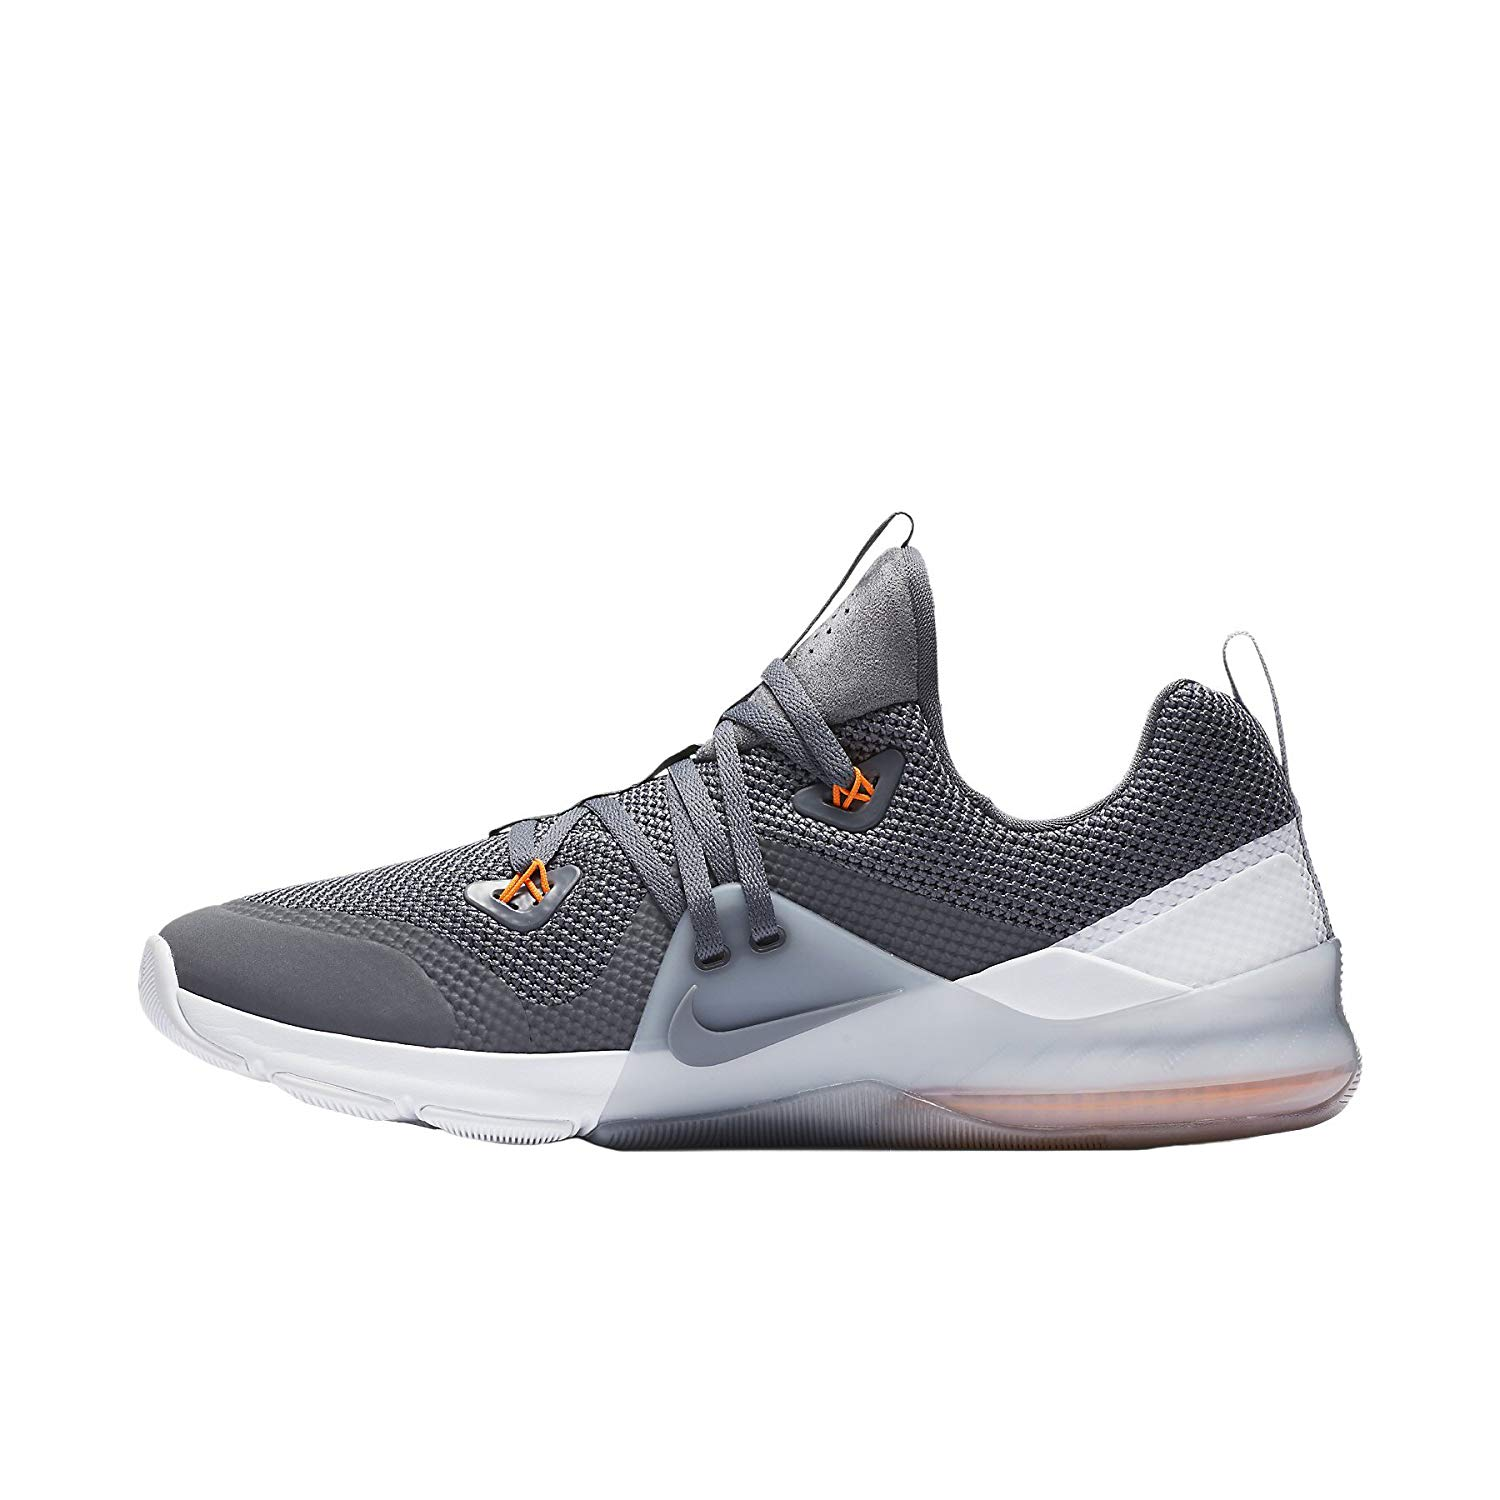 reputable site 00760 90c56 Nike Men s Zoom Command Cross Training Shoes